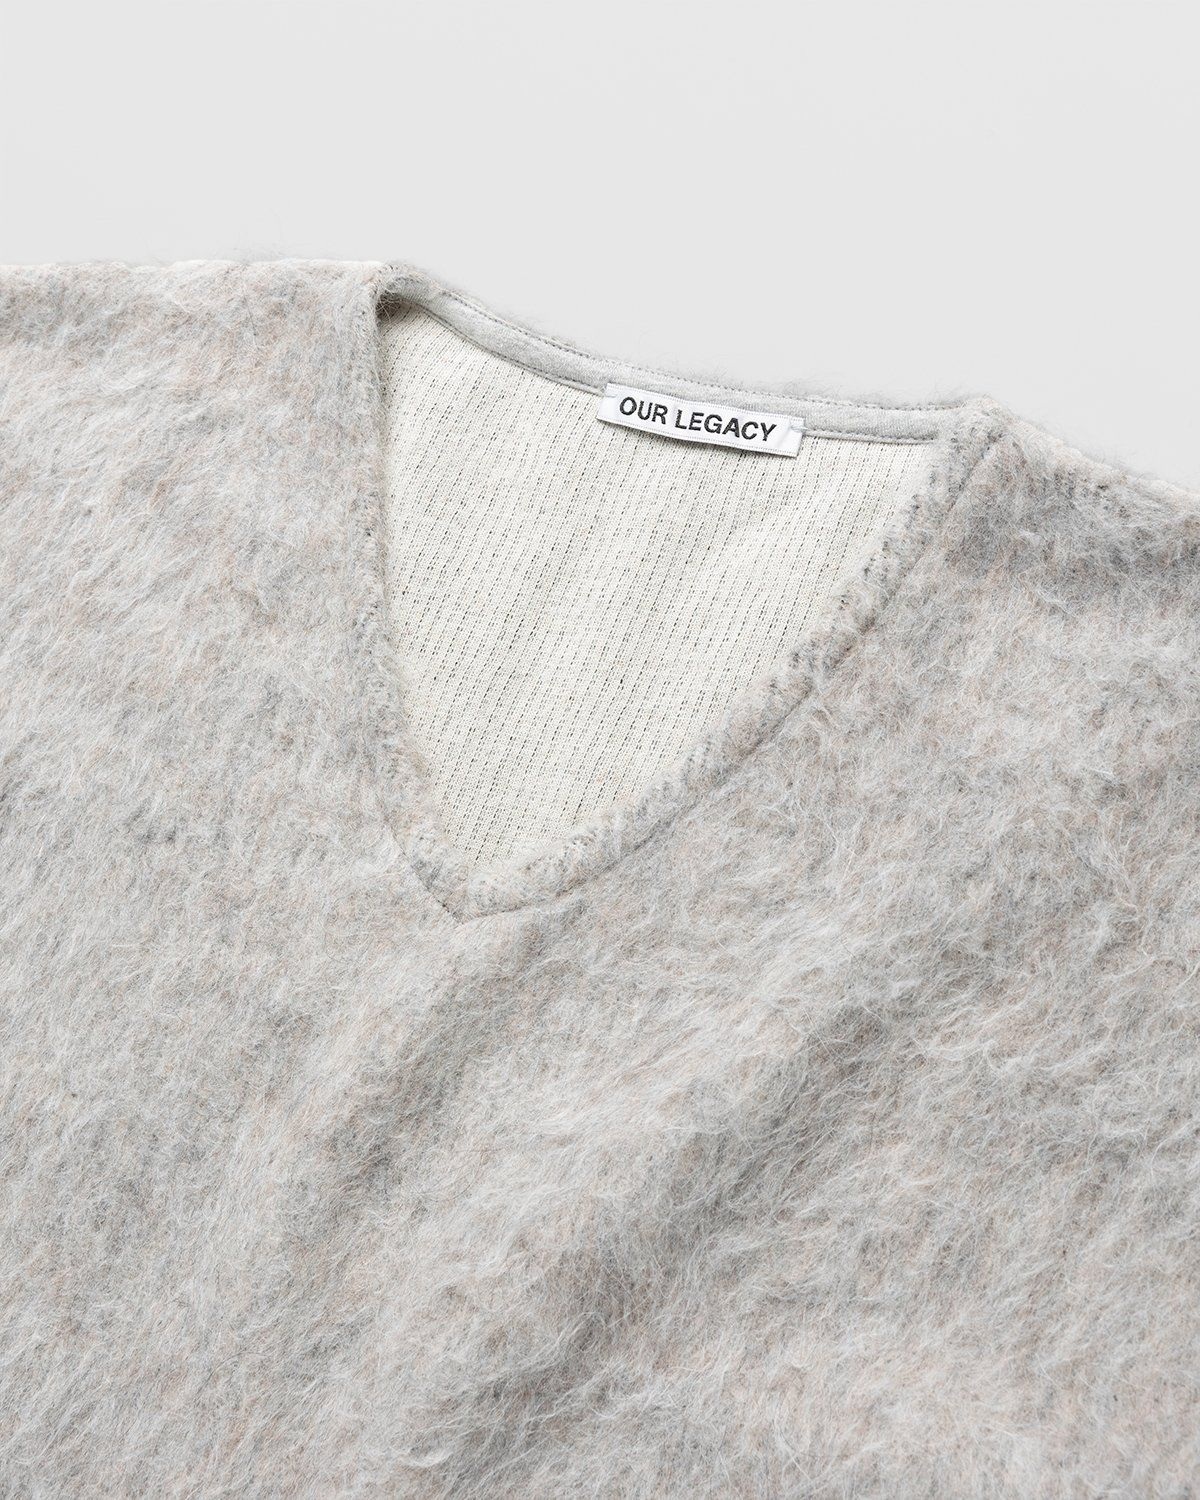 Our Legacy - Double Lock Sweater Grey Alpaca - Image 3